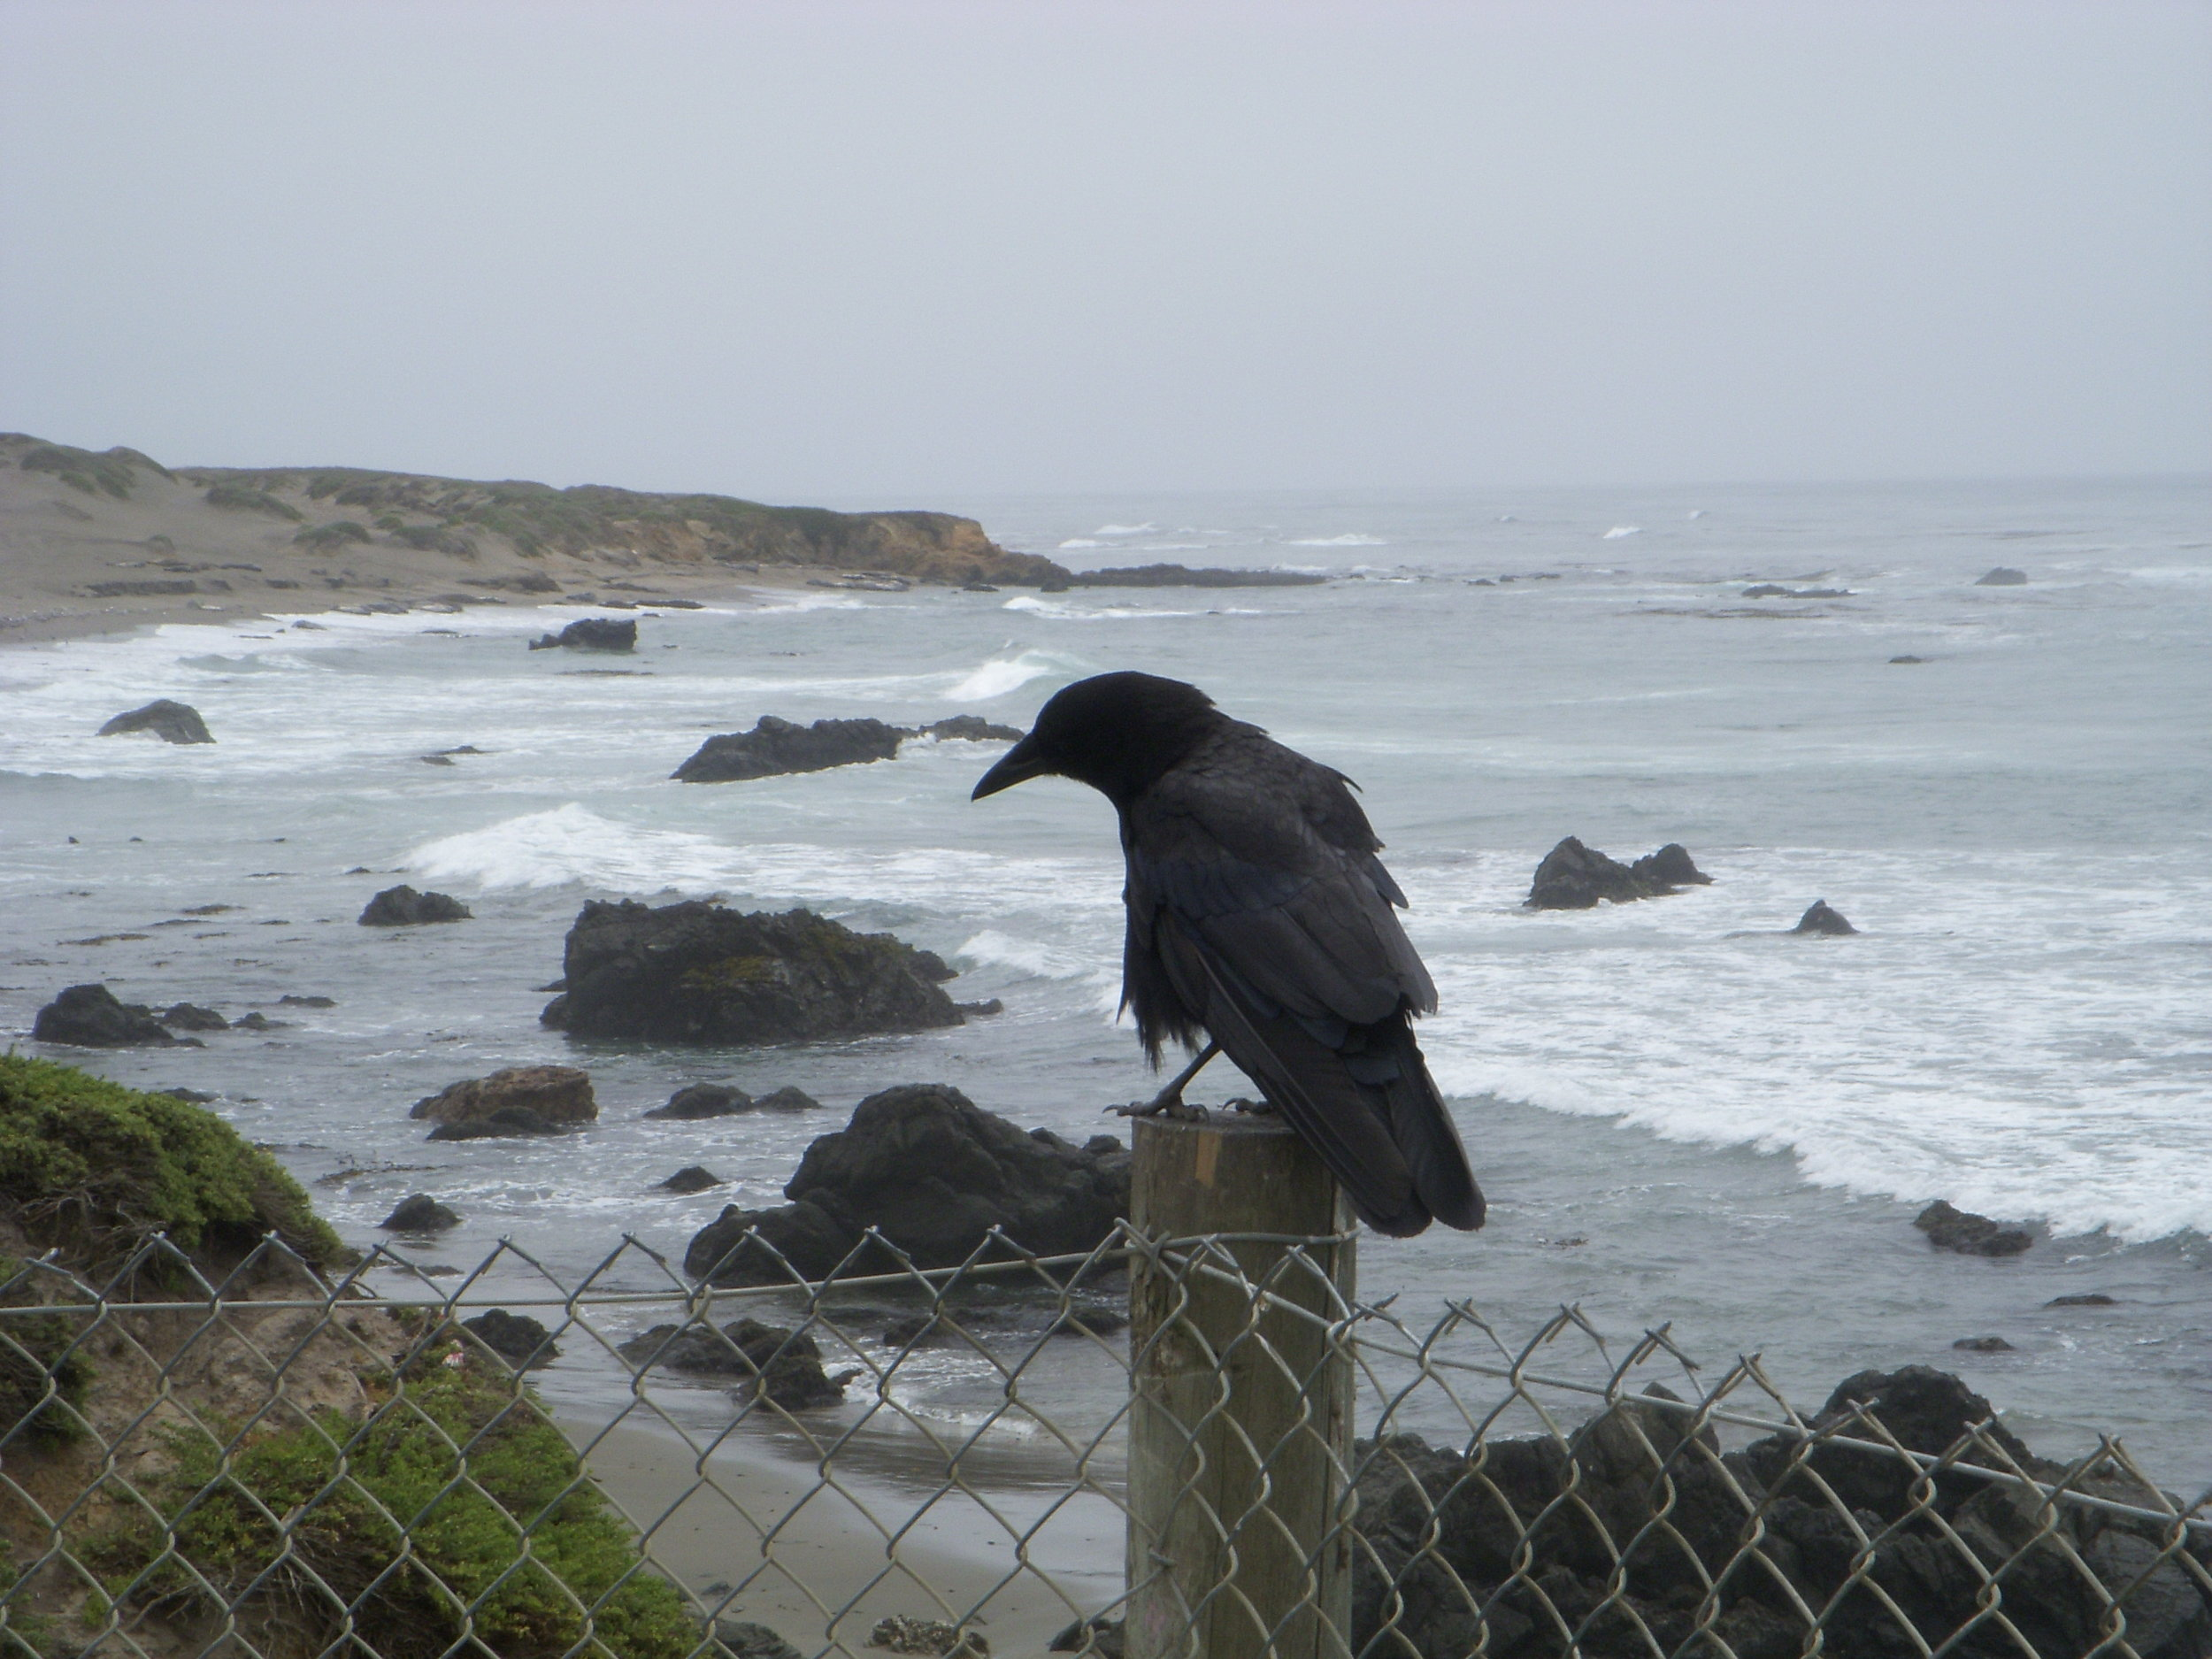 Crow at peace